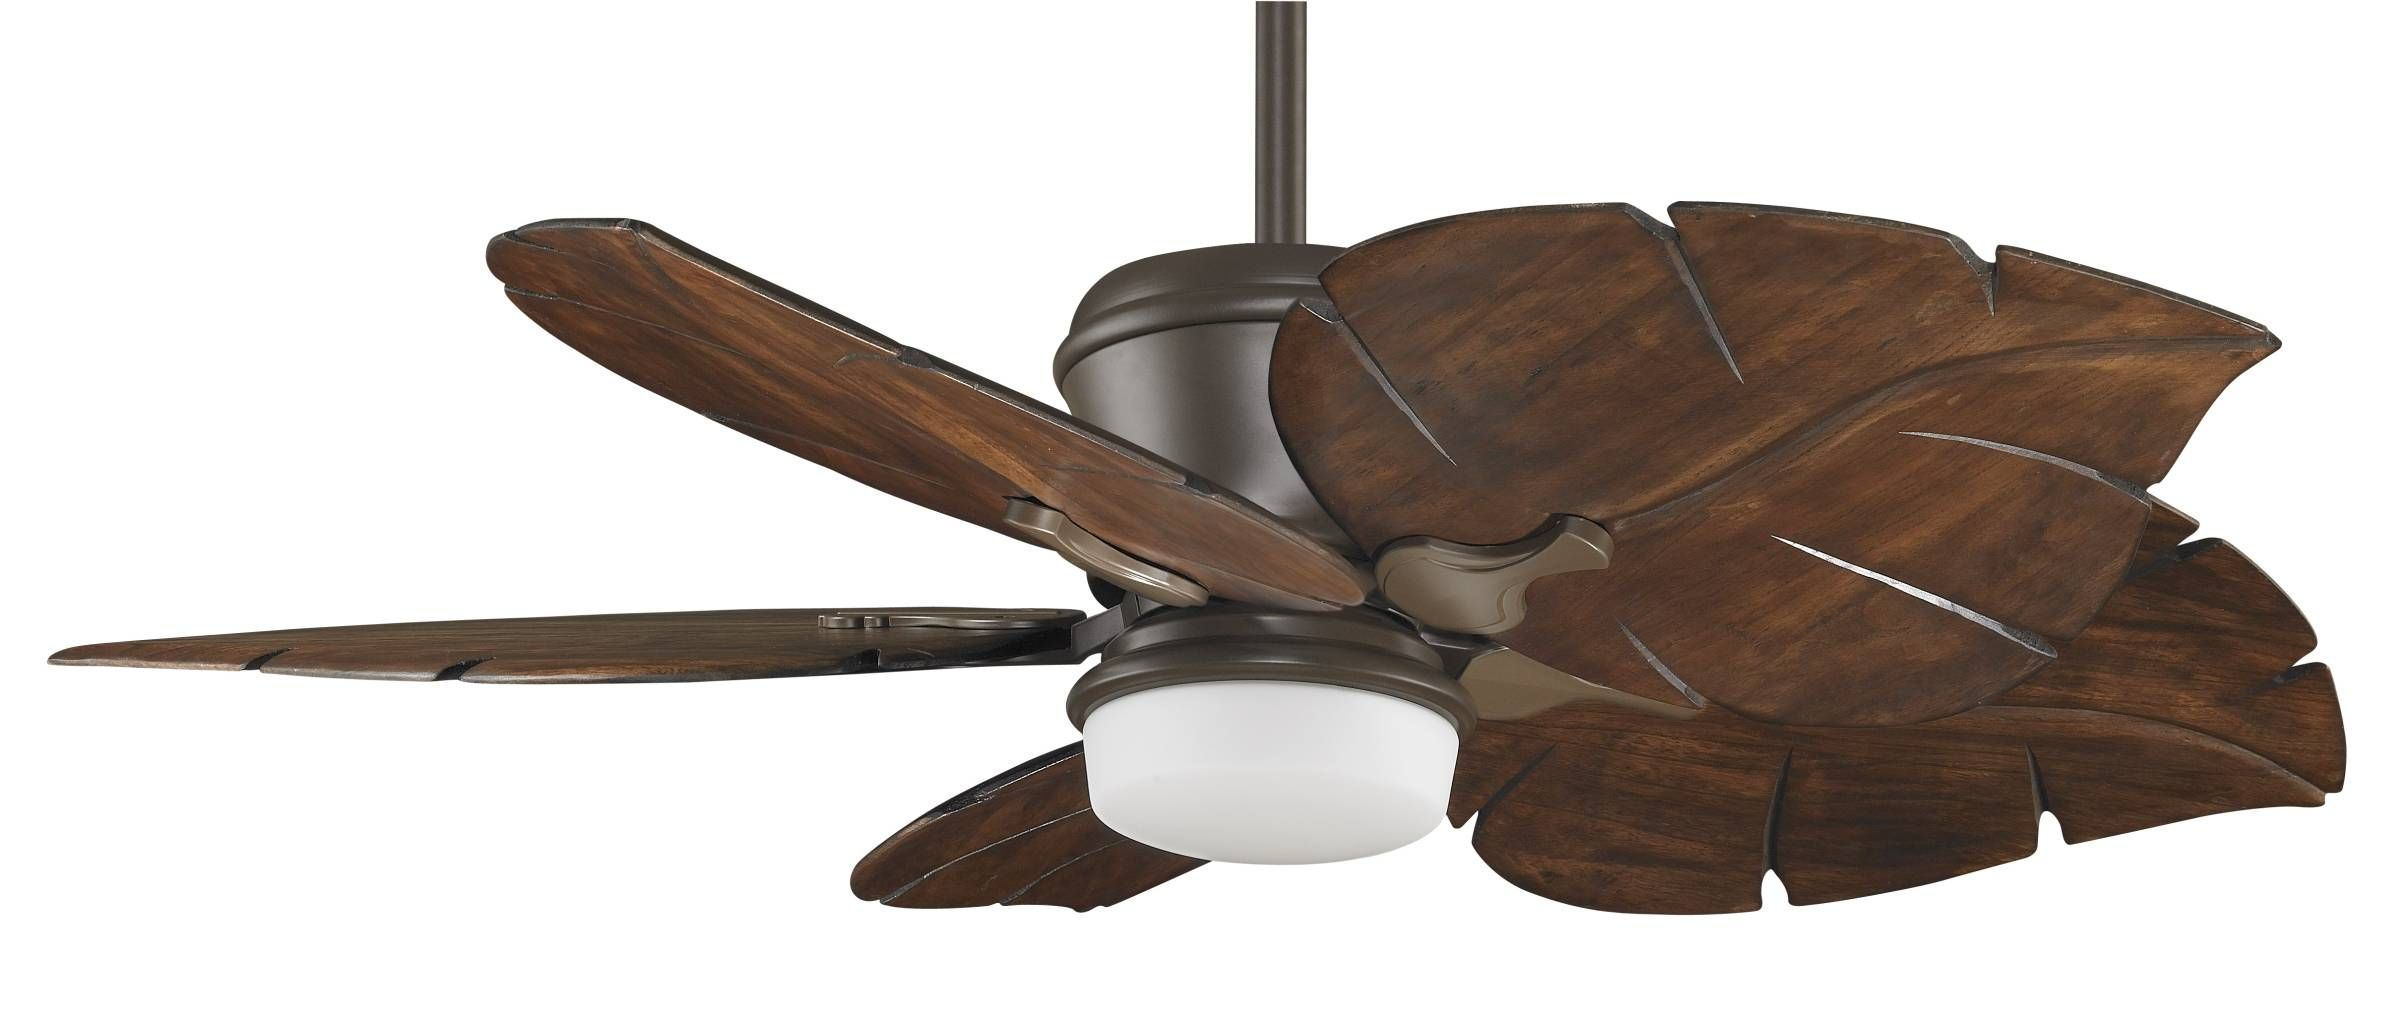 100 best Tropical Ceiling Fans images on Pinterest